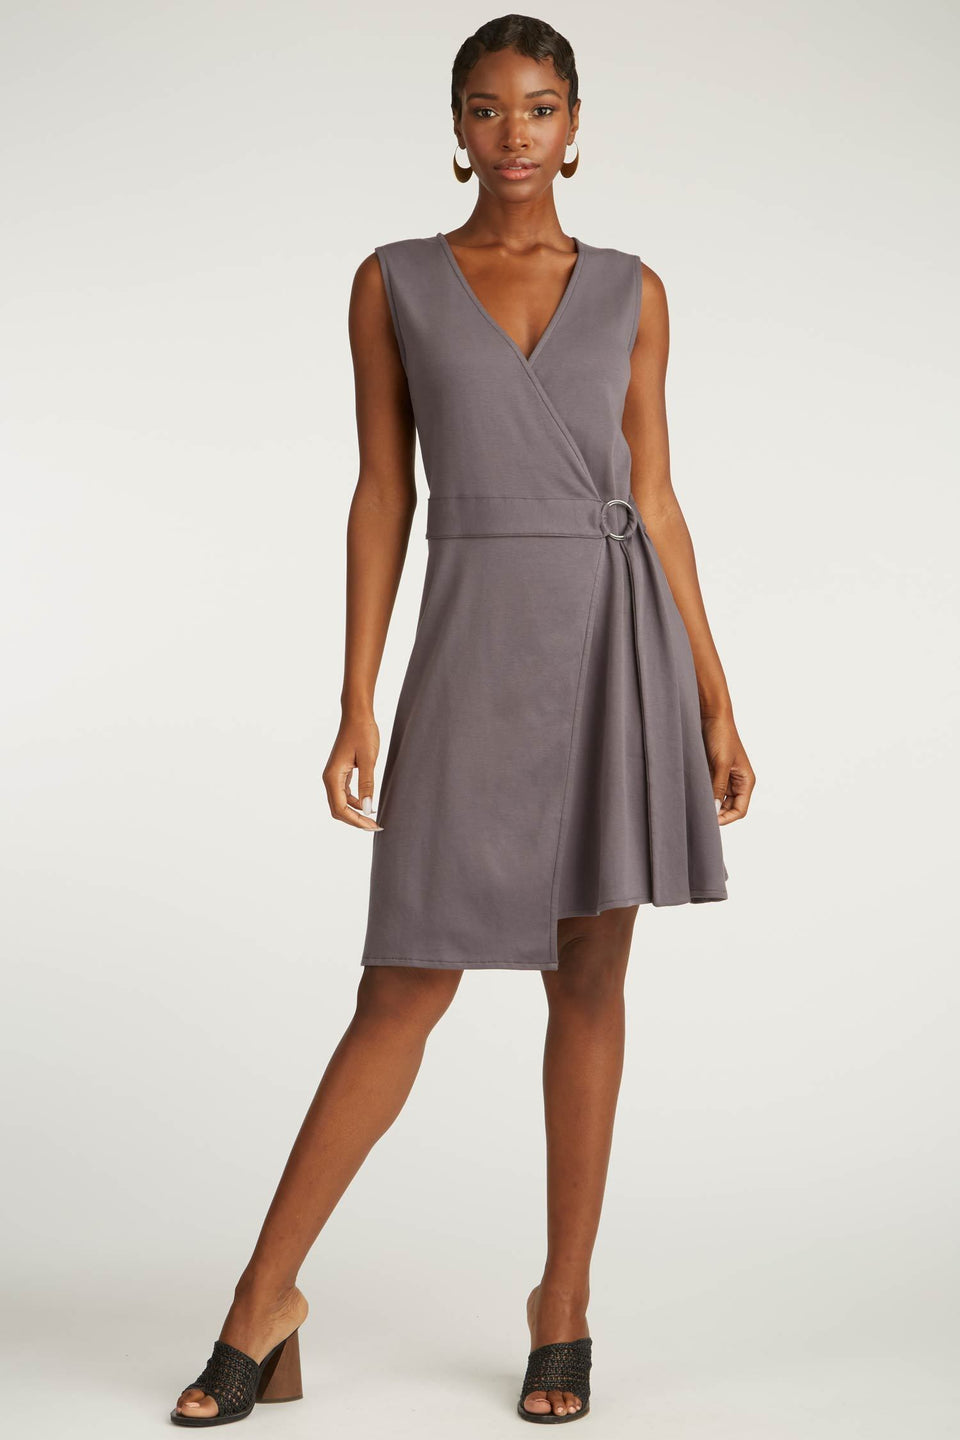 Ring Wrap Dress in Granite